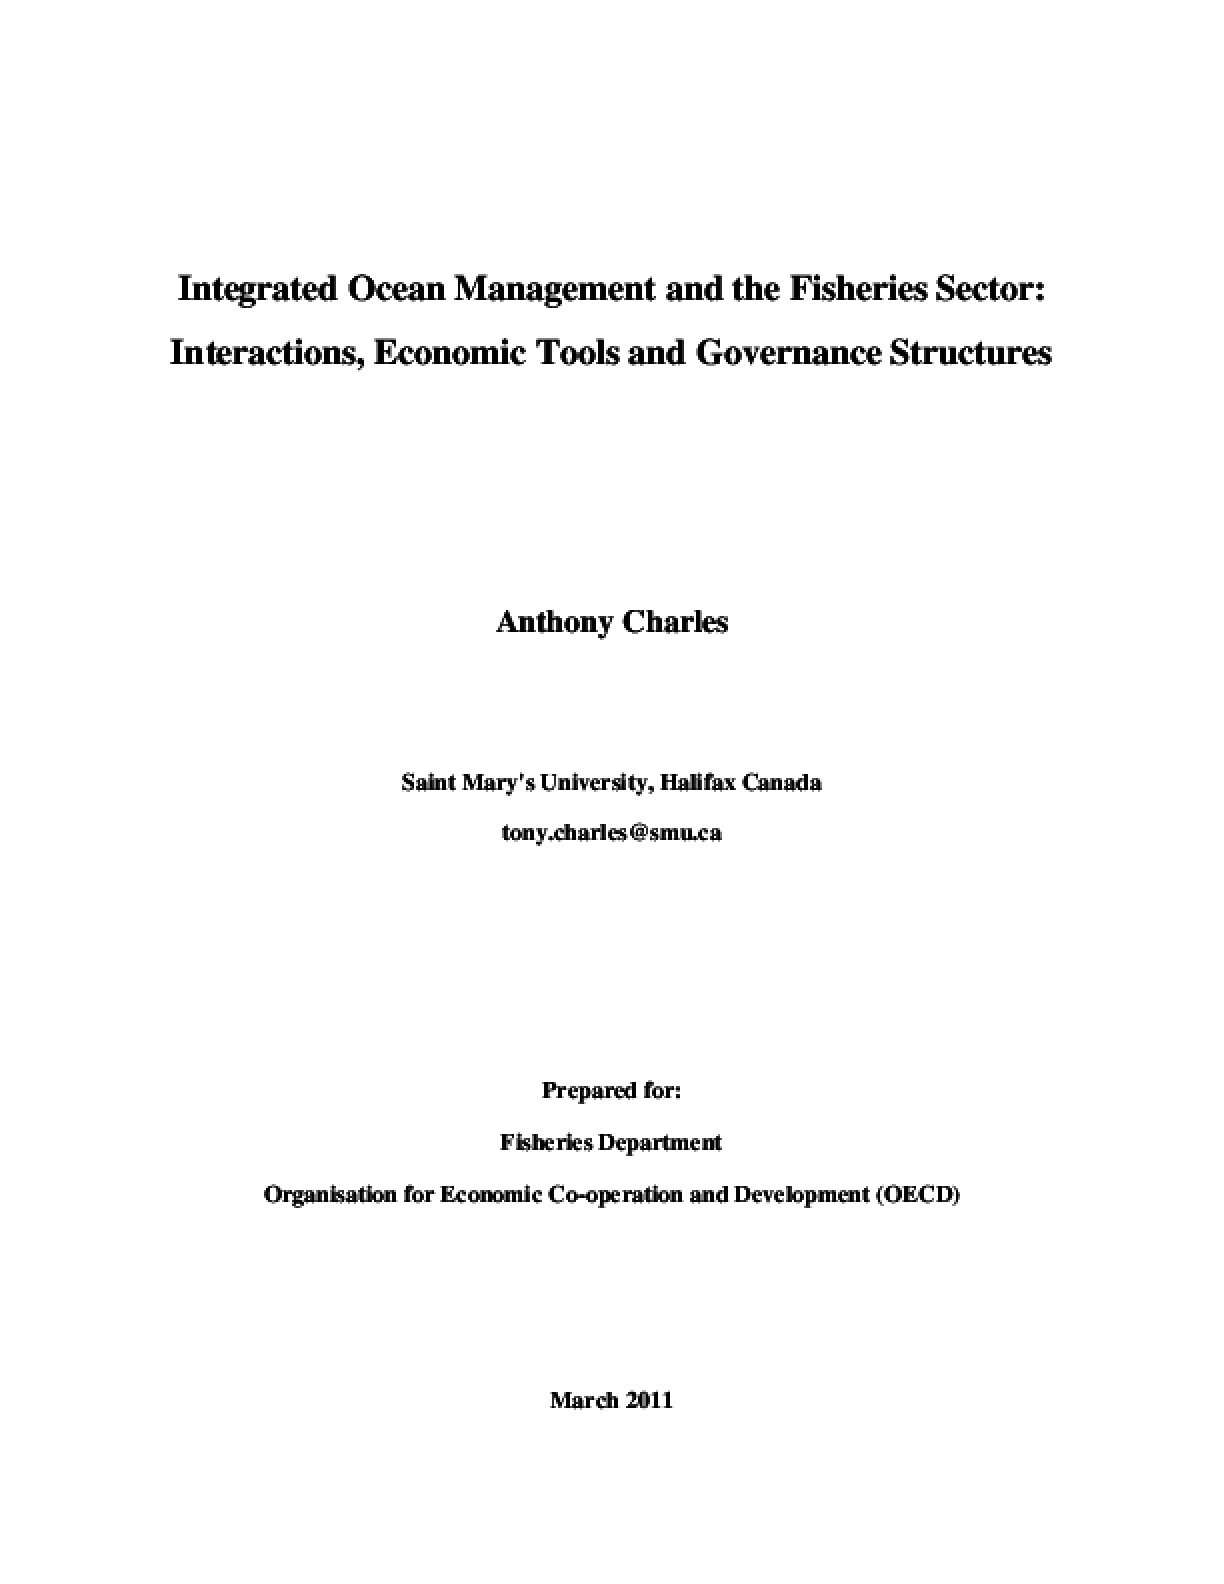 Integrated Ocean Management and the Fisheries Sector: Interactions, Economic Tools and Governance Structures